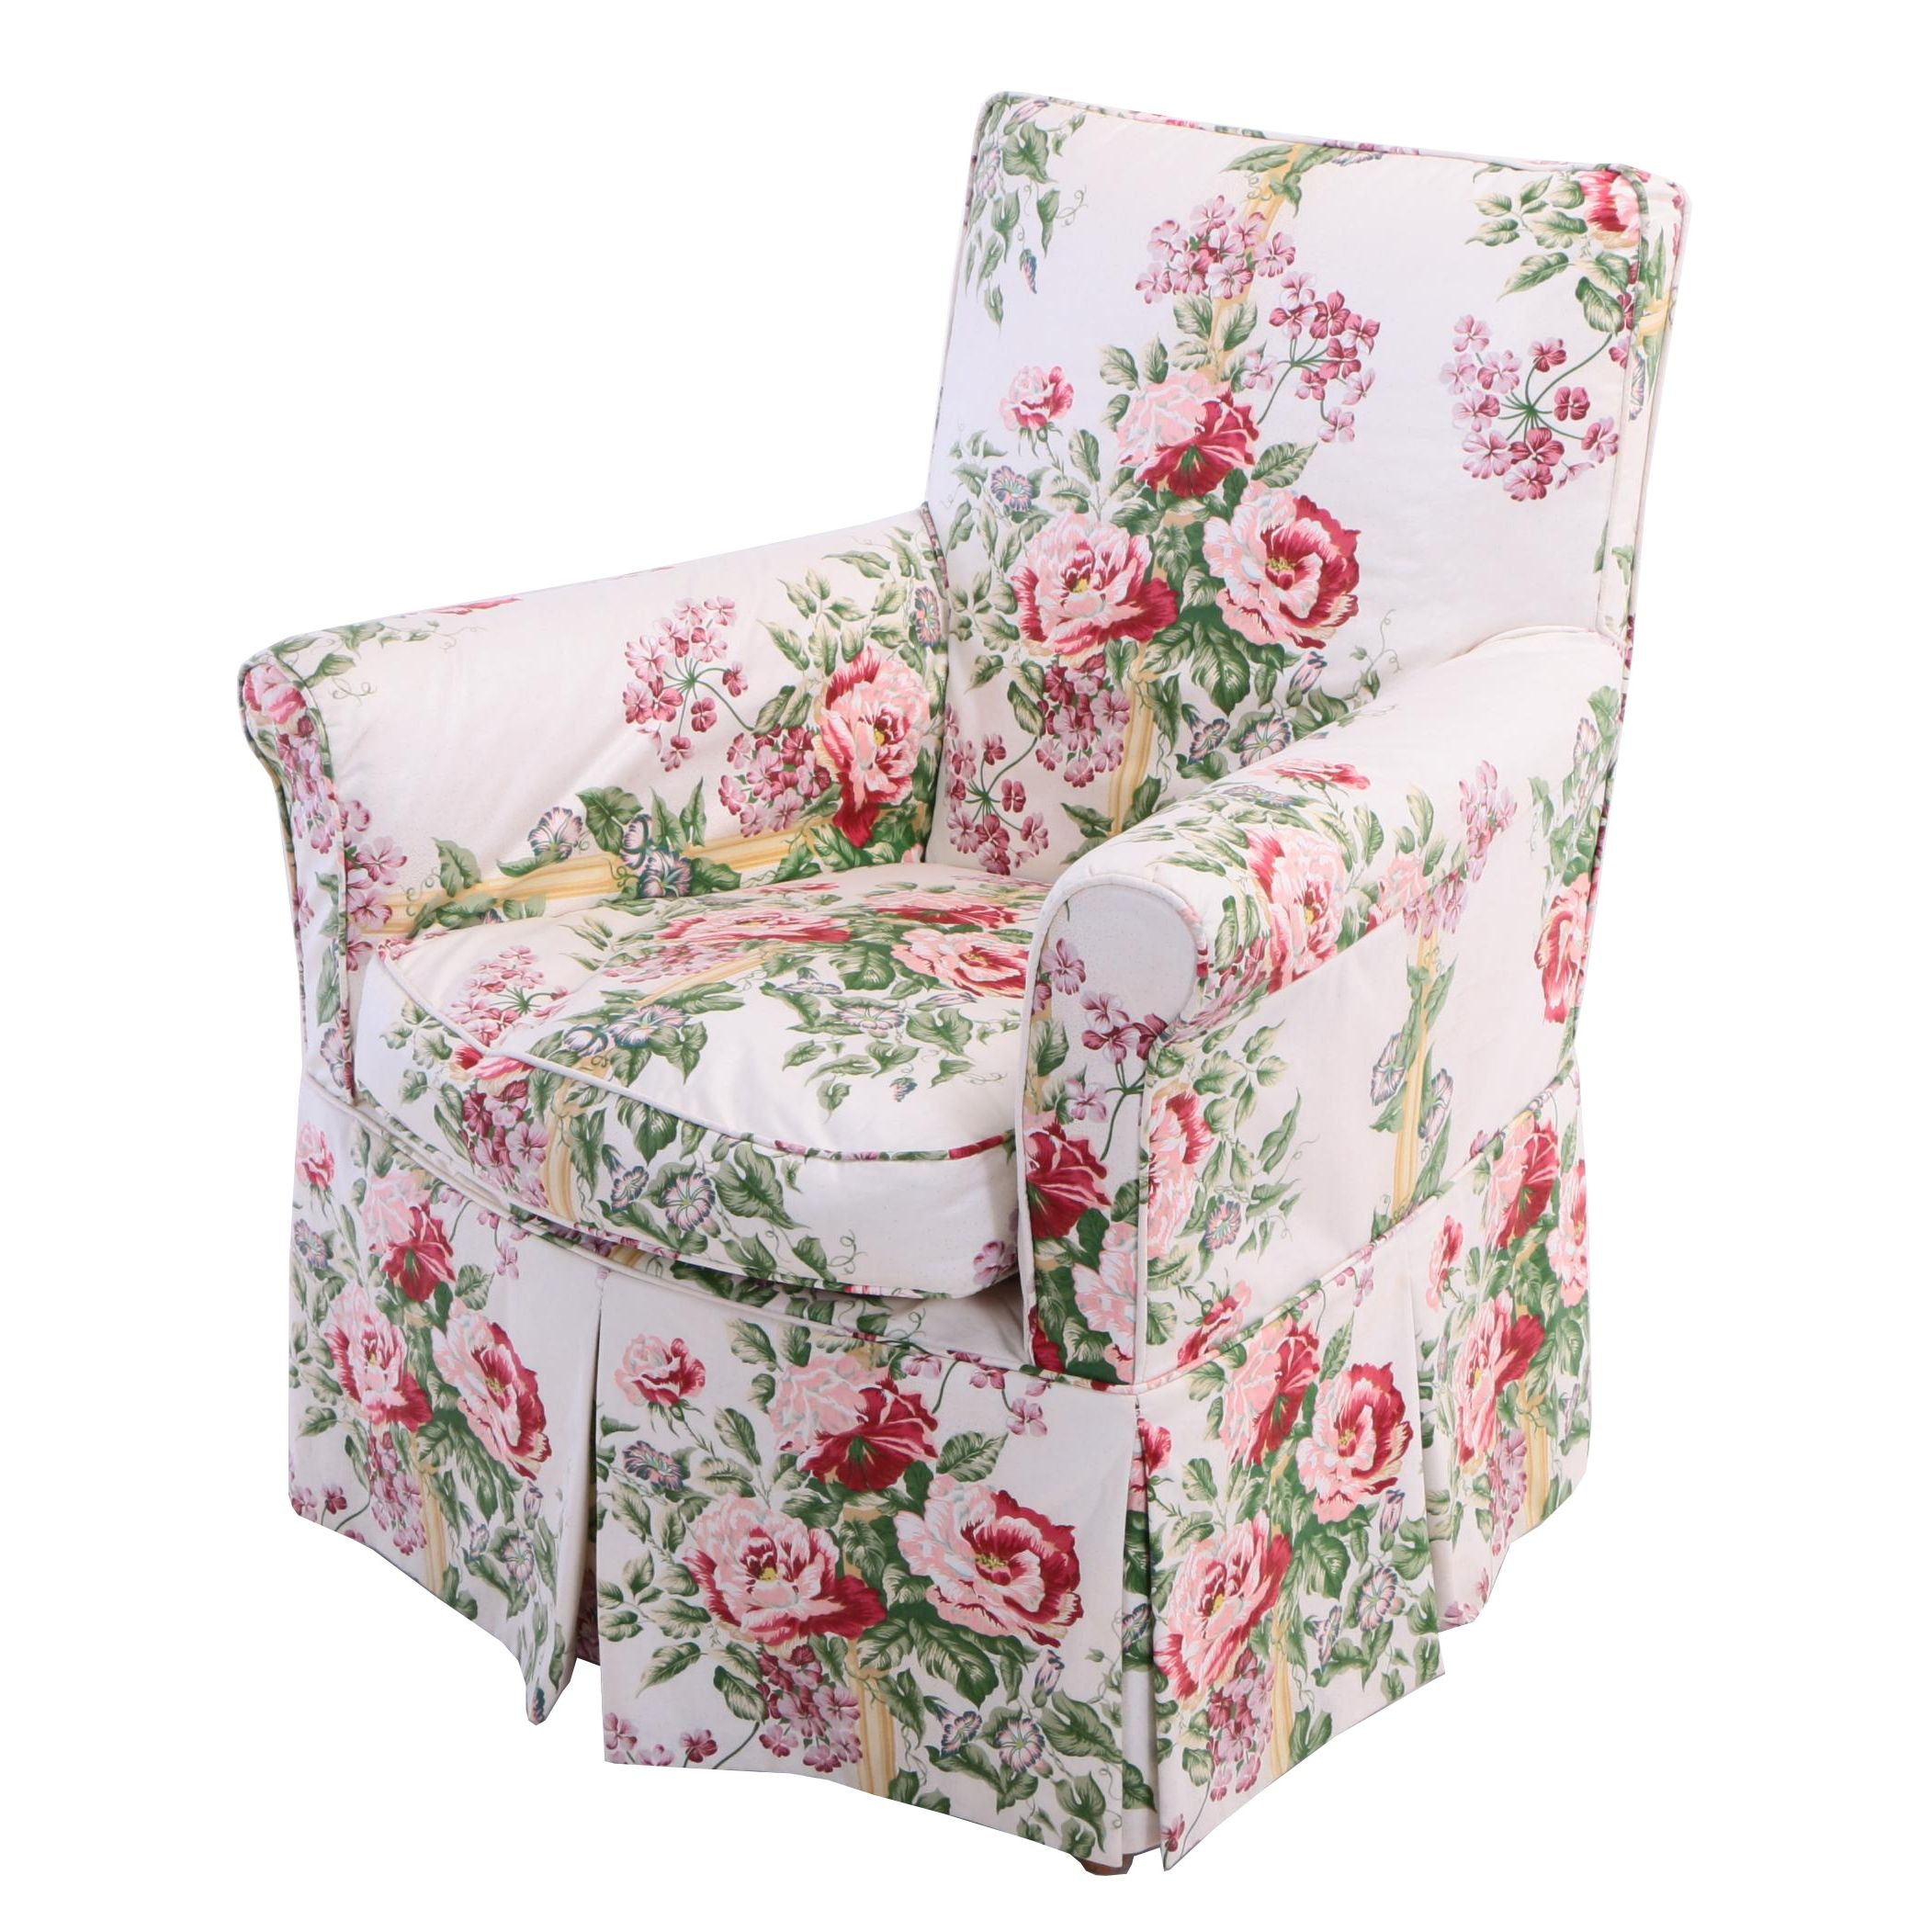 Louis XVI Style Bergère with Floral Slipcover, 20th Century